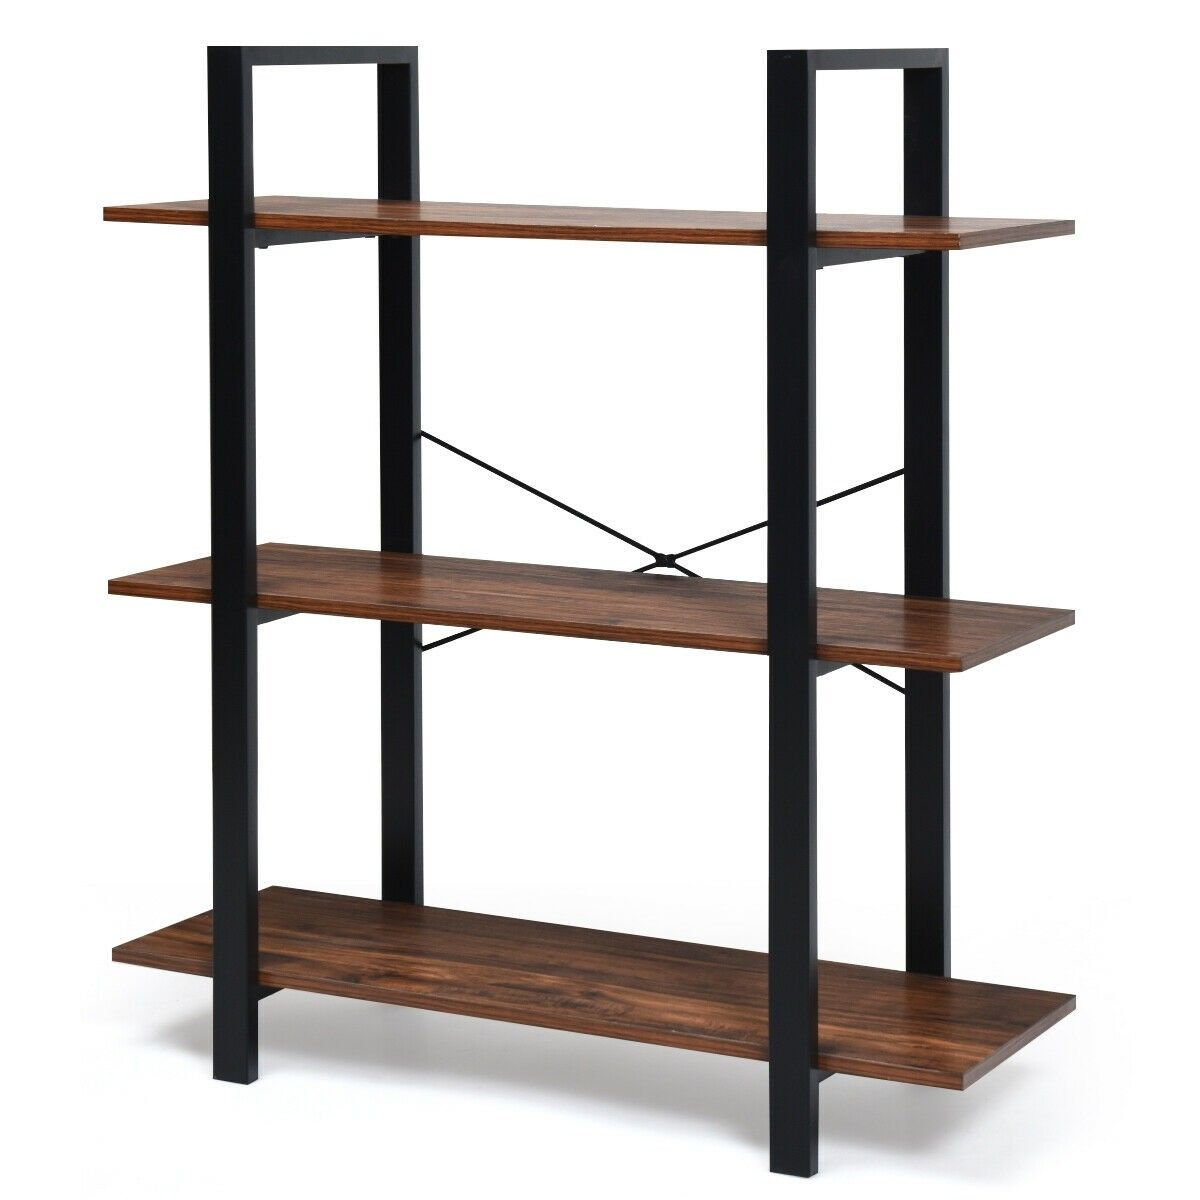 3 Tiers Bookshelf Industrial Bookcases Metal Frame Shelf Stand 79 95 Free Shipping It Is Made Of P2 Grad Metal Bookshelf Metal Bookcase Industrial Bookcases